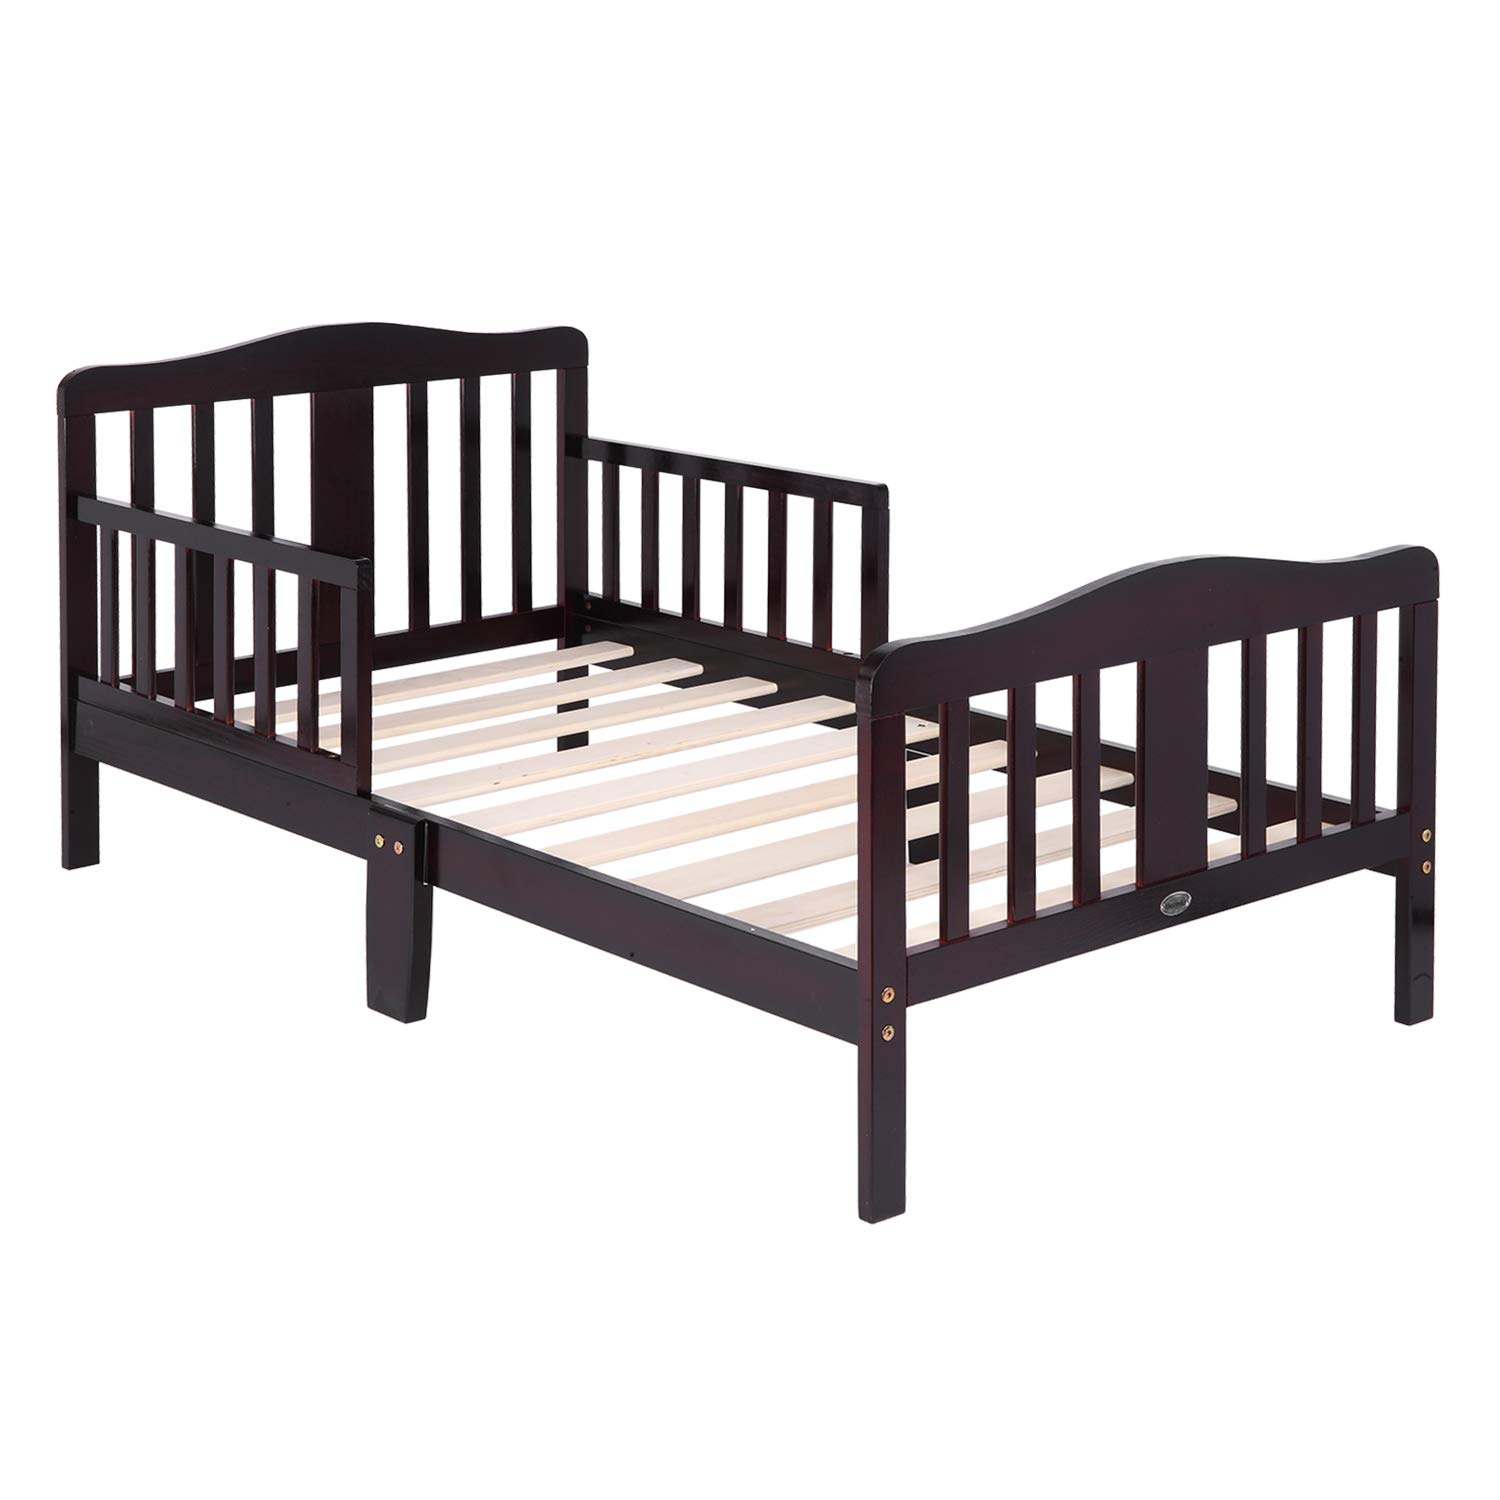 Bonnlo Toddler Bed with Safety Rail Fence for Boy and Girl, Dark Cherry by Bonnlo